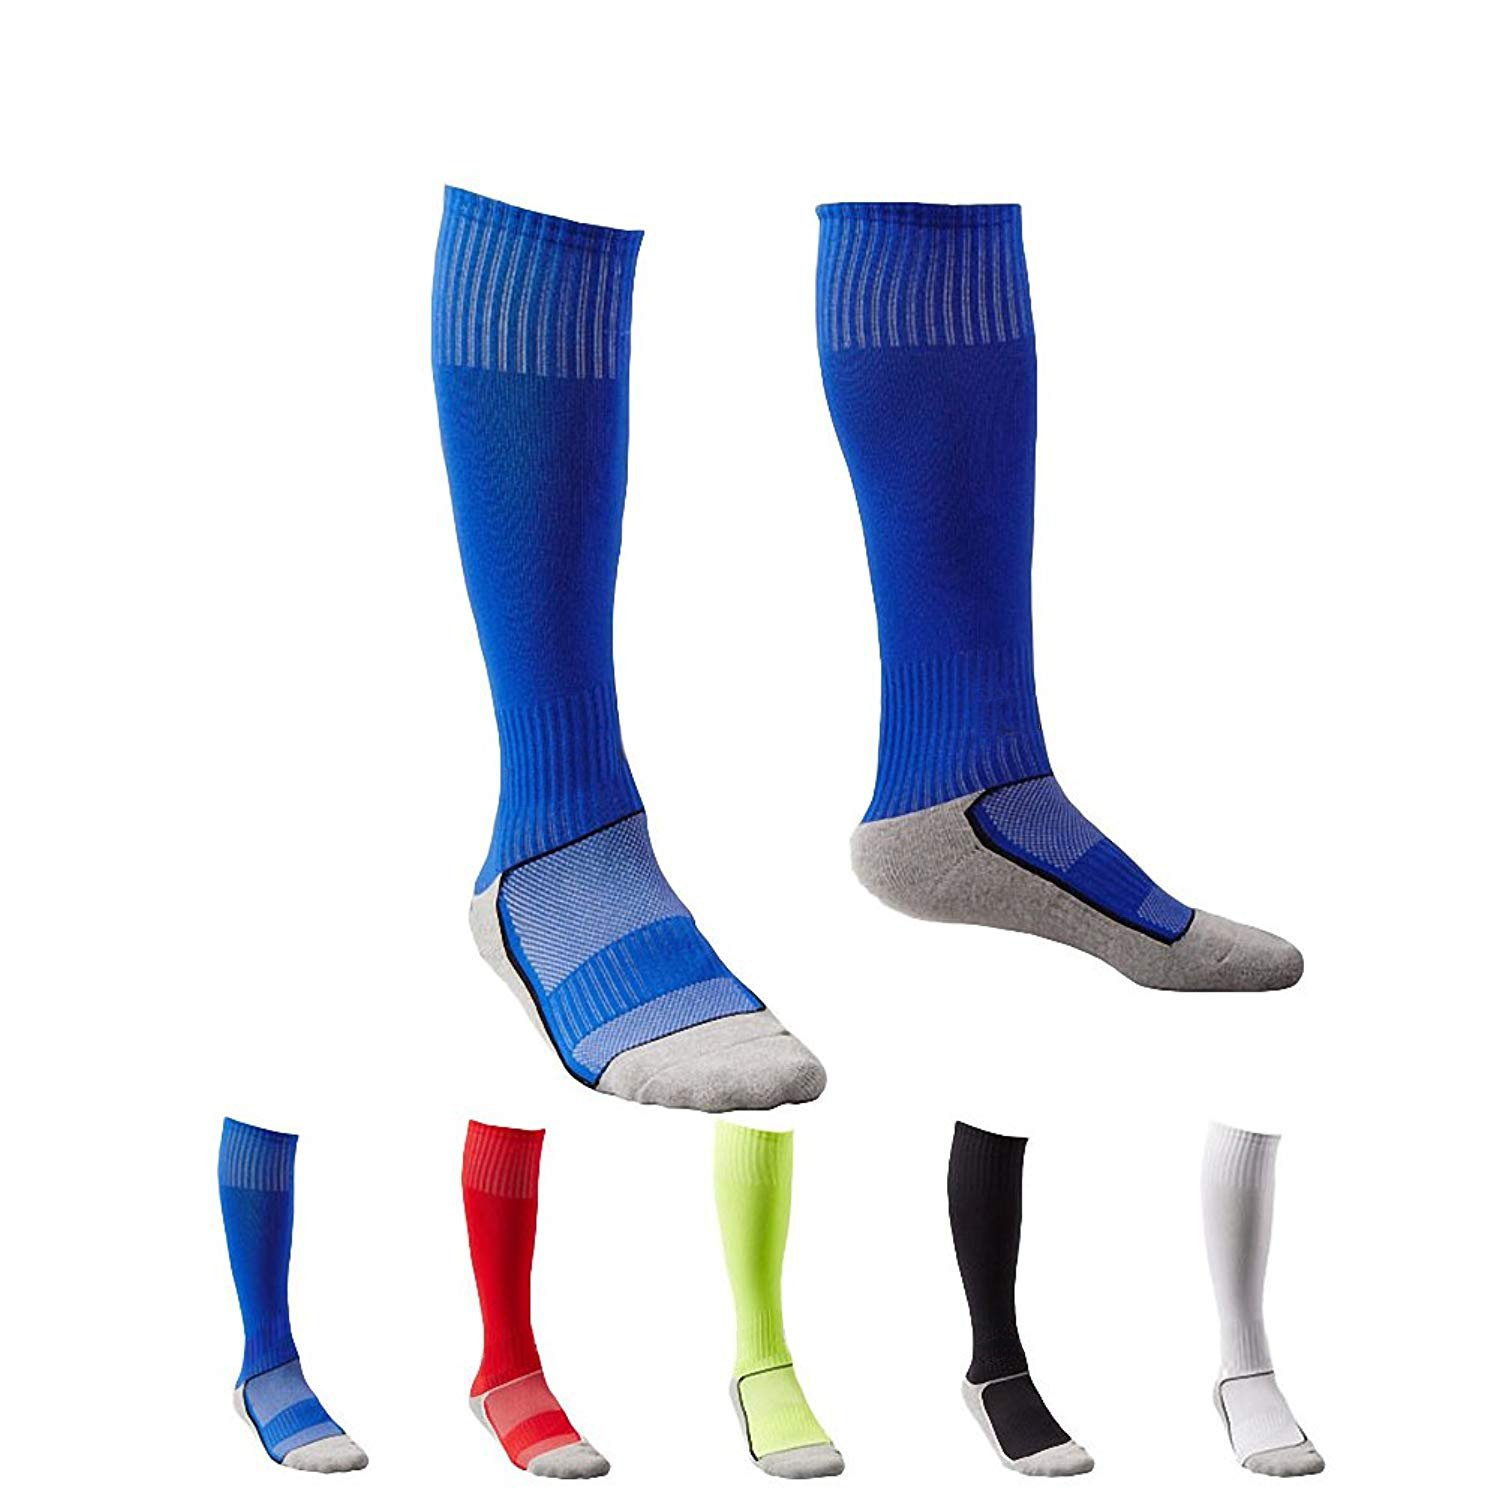 5 Pair Childrens/Kids Boys Long Athletic Football / Soccer SocksSport Tube SocksOver the Knee High Cotton Socks, One Size, Multi Colors